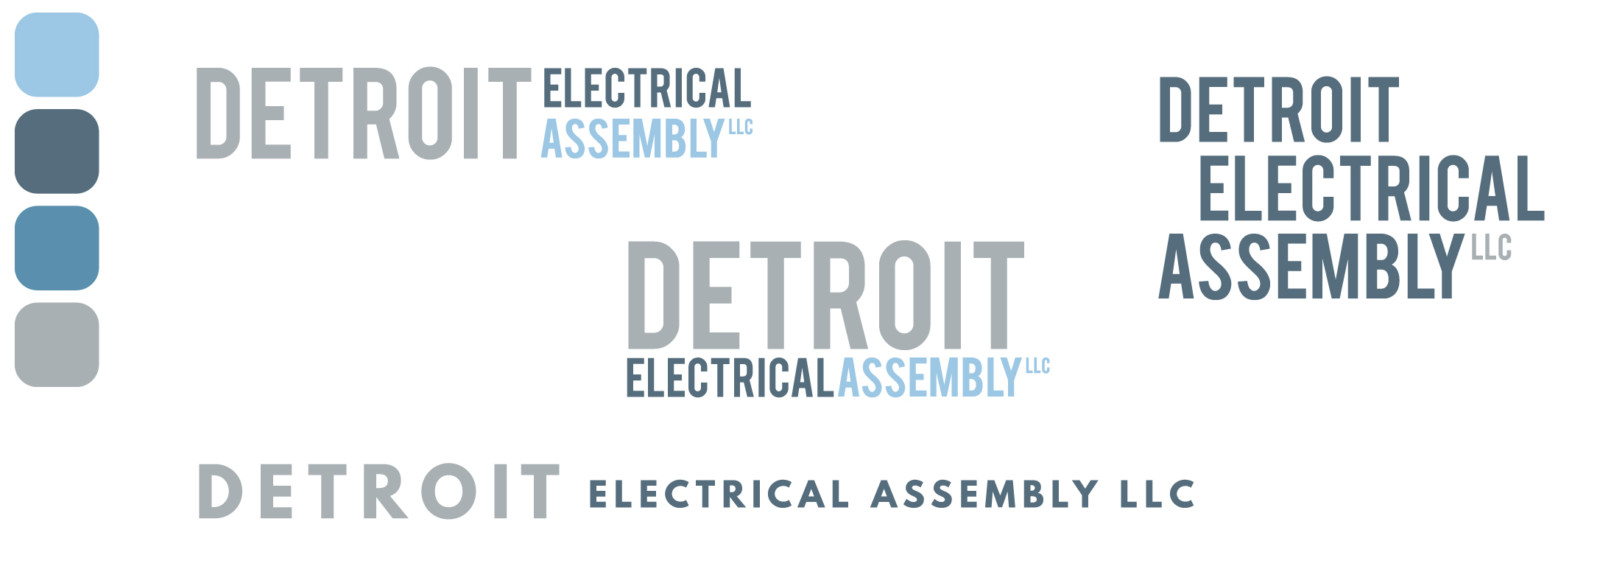 Detroit Electrical Assembly Process Logos